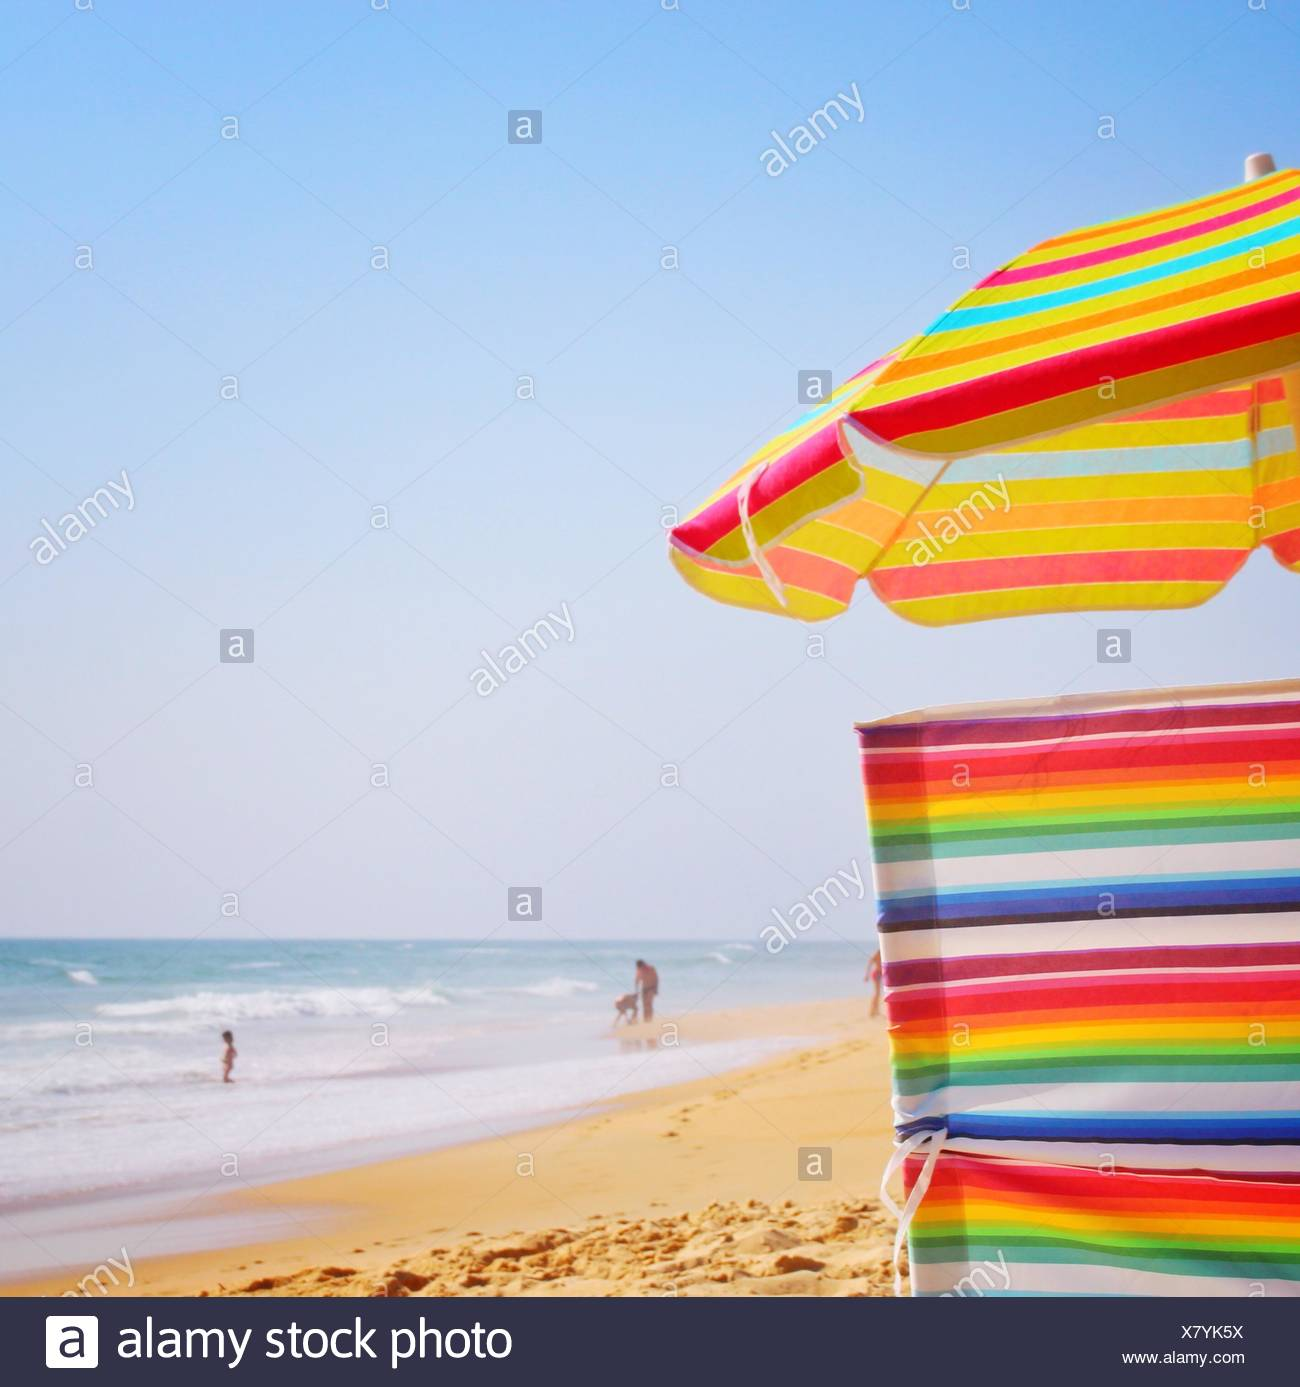 Multi Colored Umbrella On Beach Against Clear Sky - Stock Image